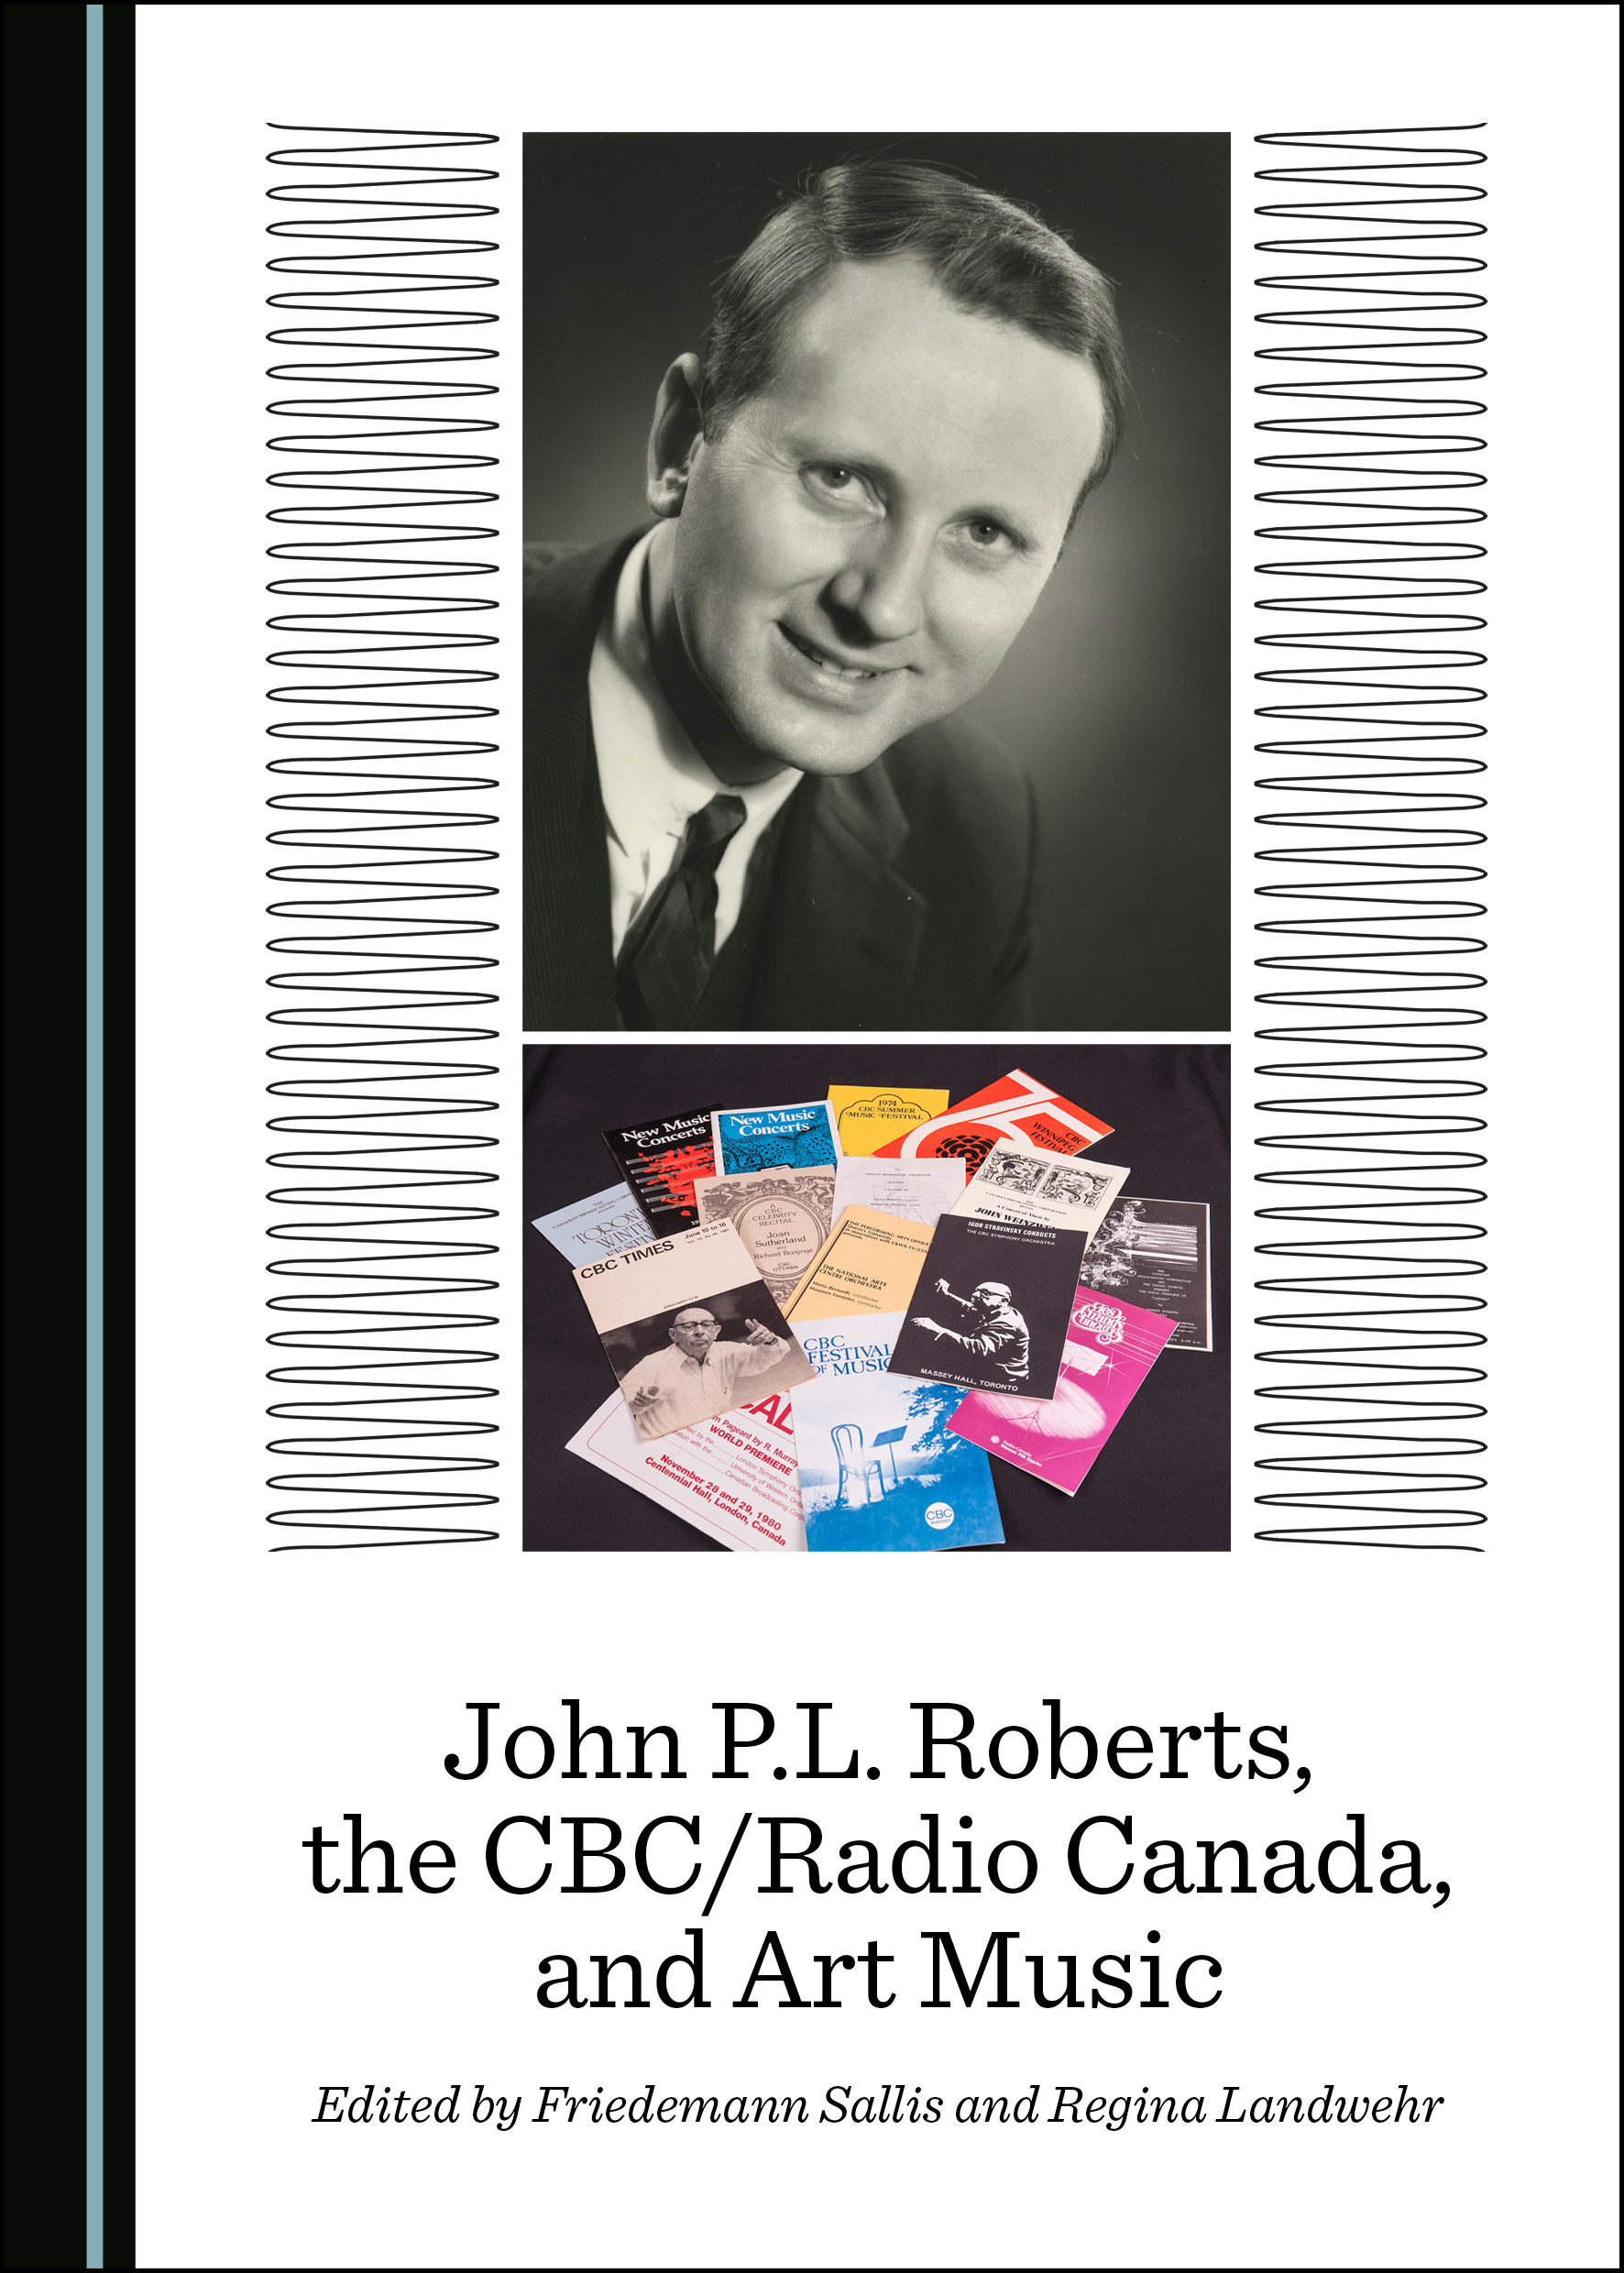 John P.L. Roberts, the CBC/Radio Canada, and Art Music